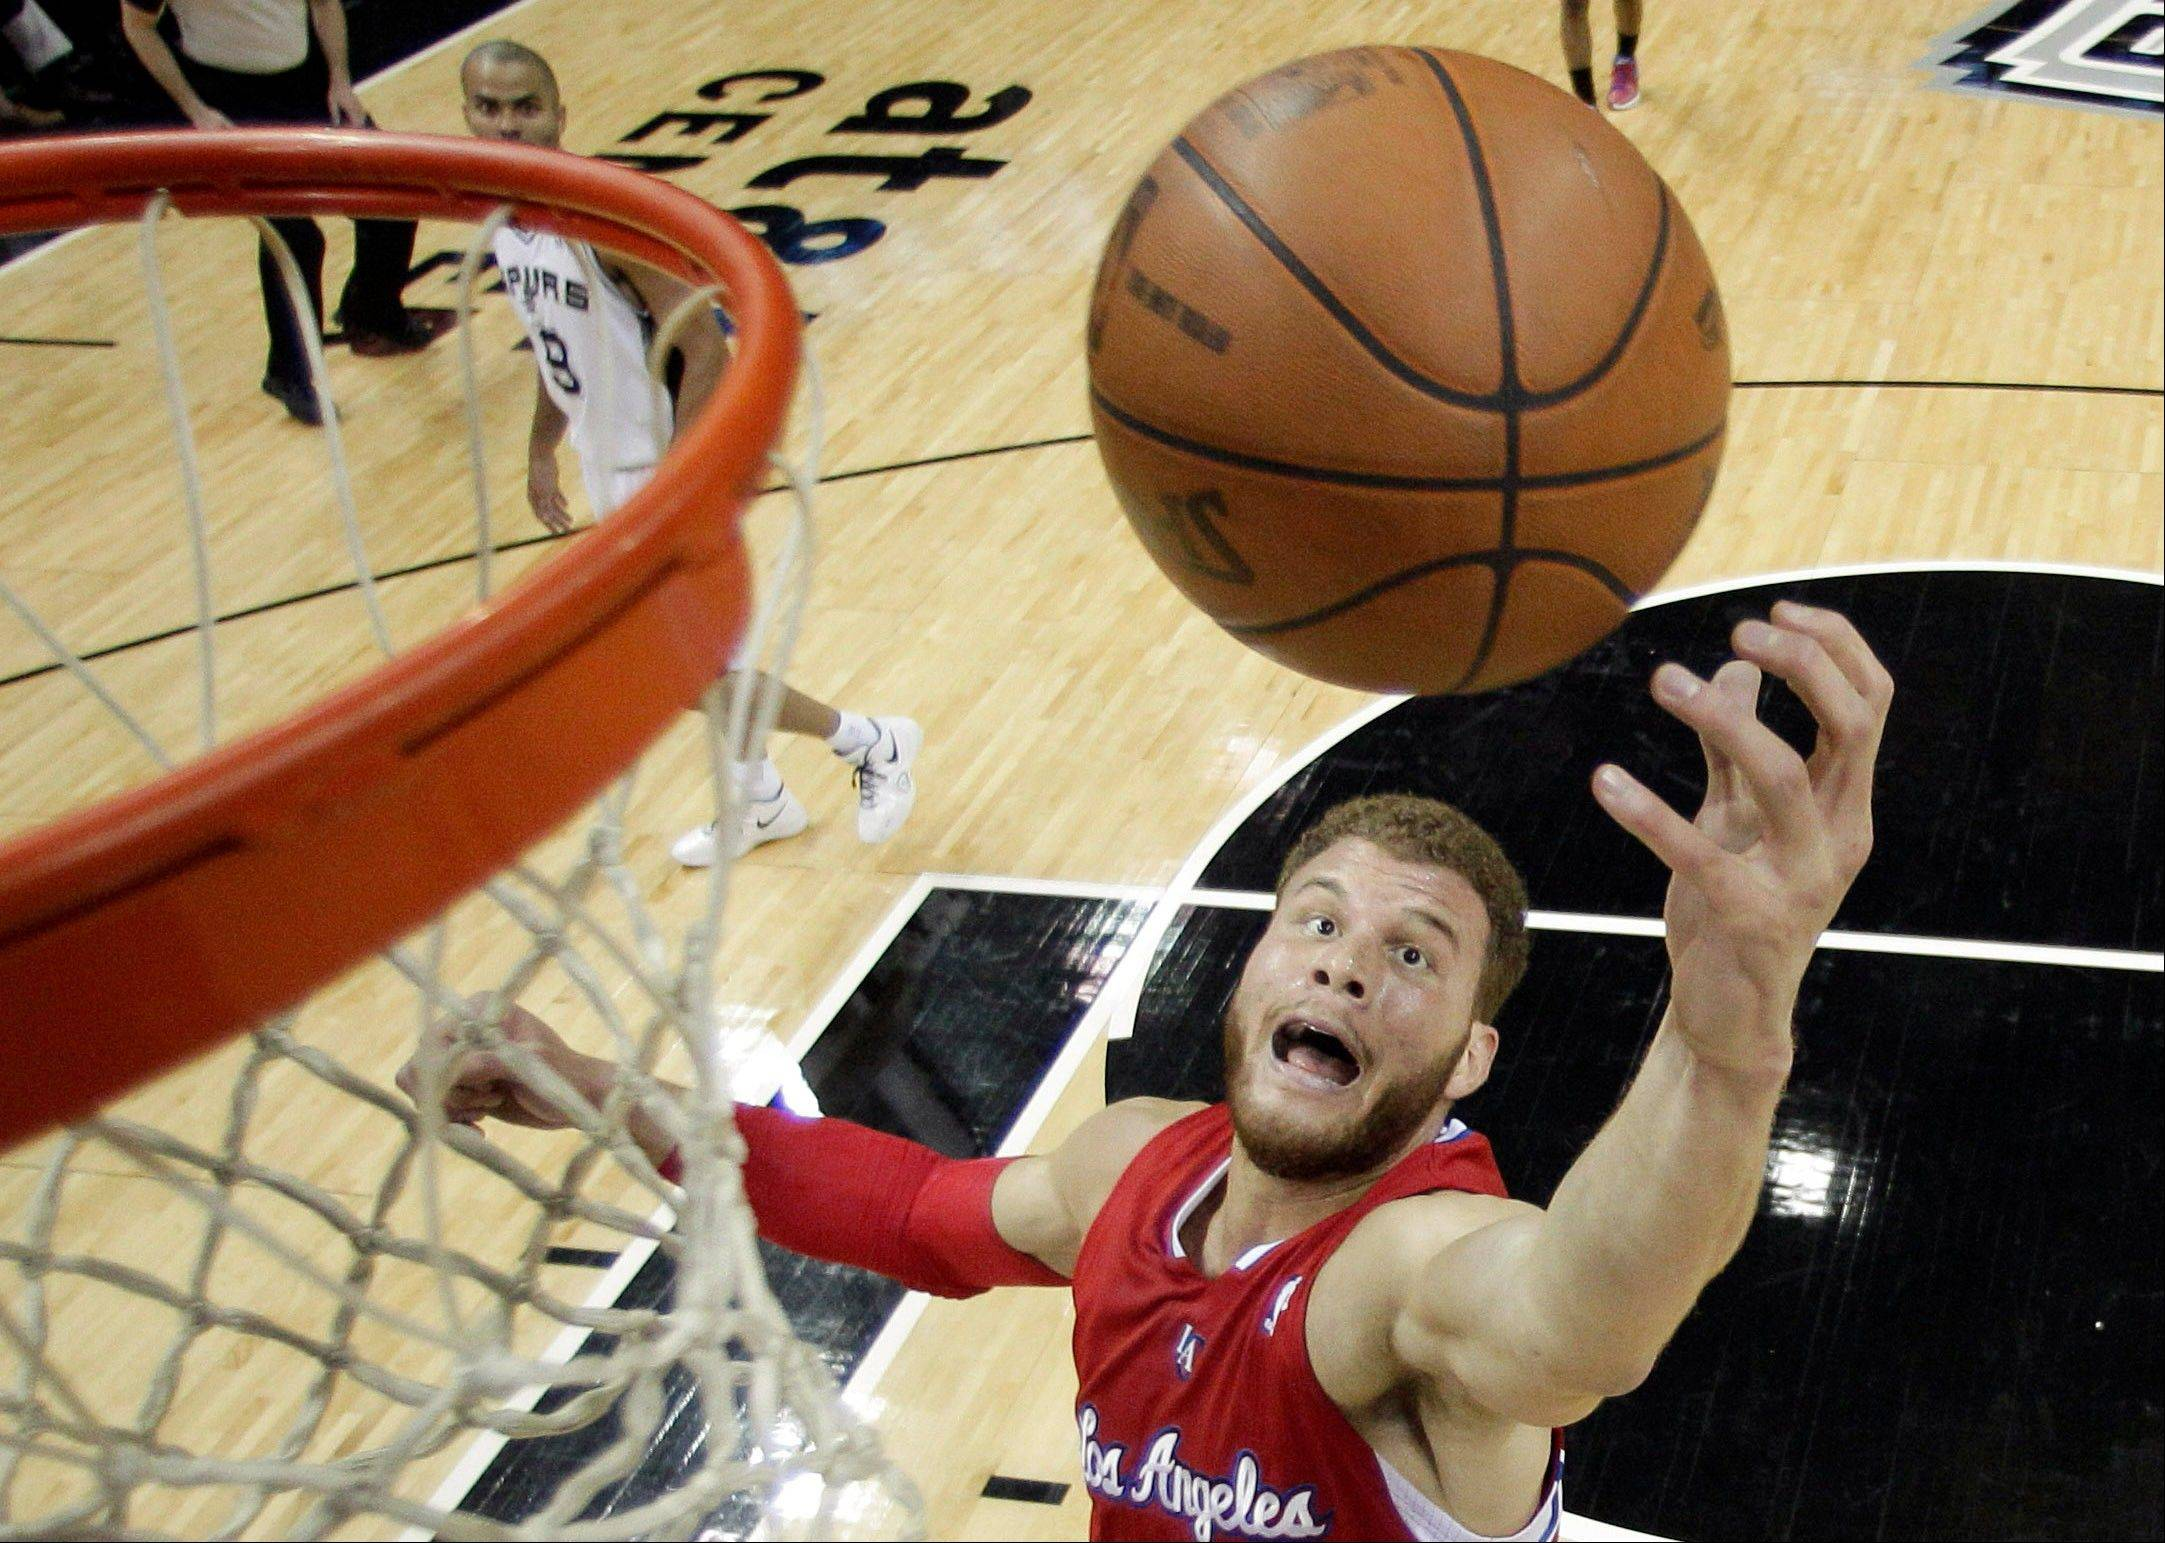 Blake Griffin aggravated a left knee injury during U.S. Olympic team training camp and has returned to Los Angeles for evaluation. The Clippers forward was hurt during a scrimmage Wednesday, a person with knowledge of the details said, confirming a Yahoo Sports report.